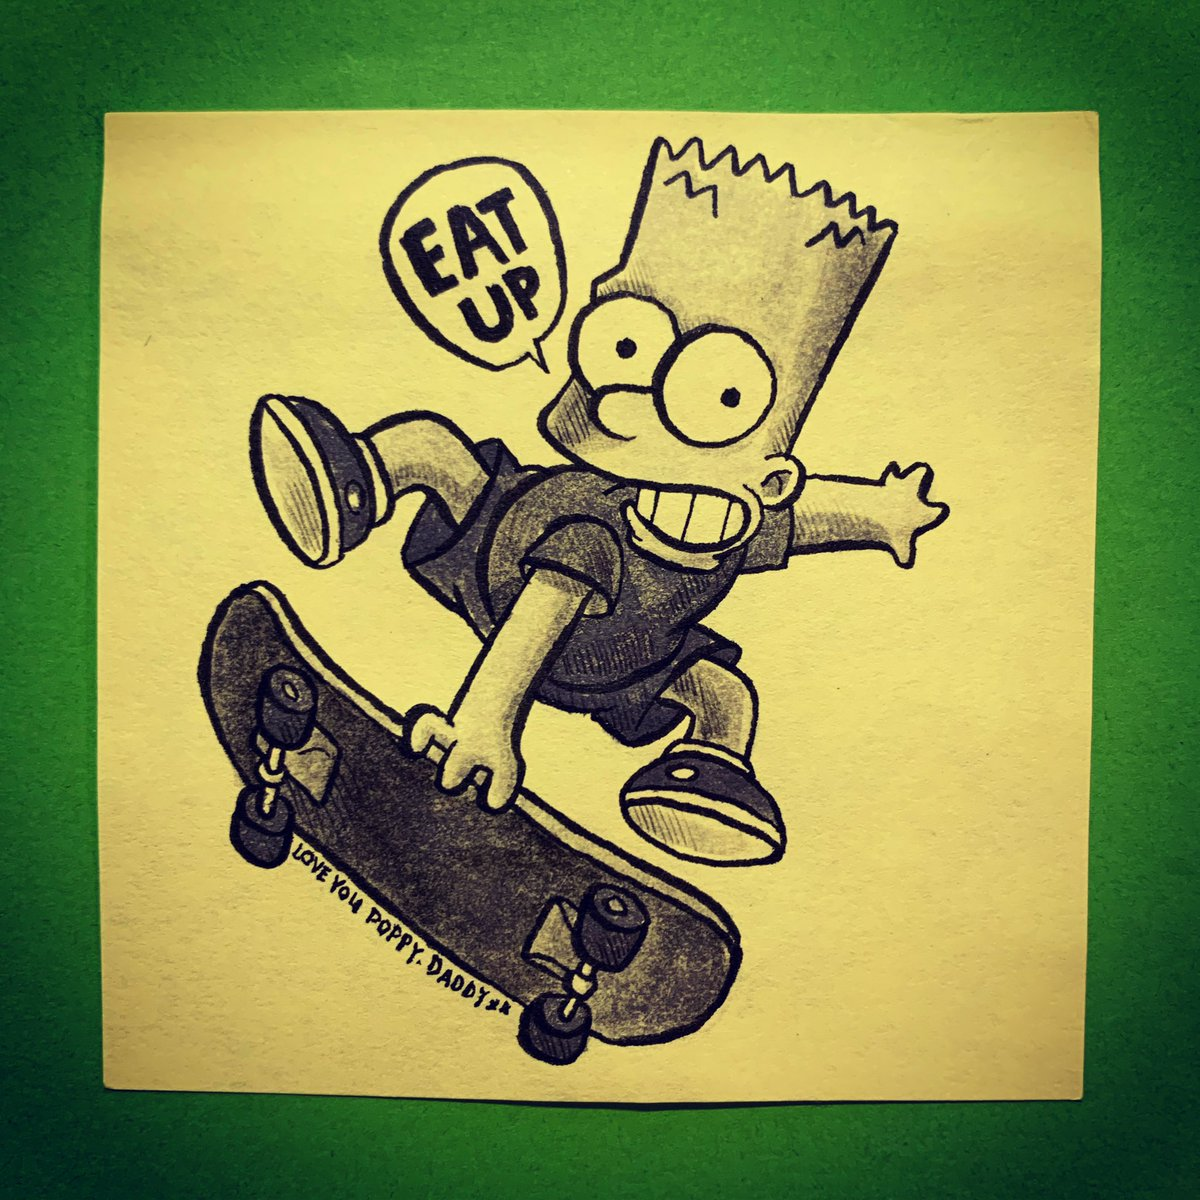 Poppy's final drawing of the week features #PackedLunchPostIt regular Bart Simpson, as requested by Pop's classmate Esmé.